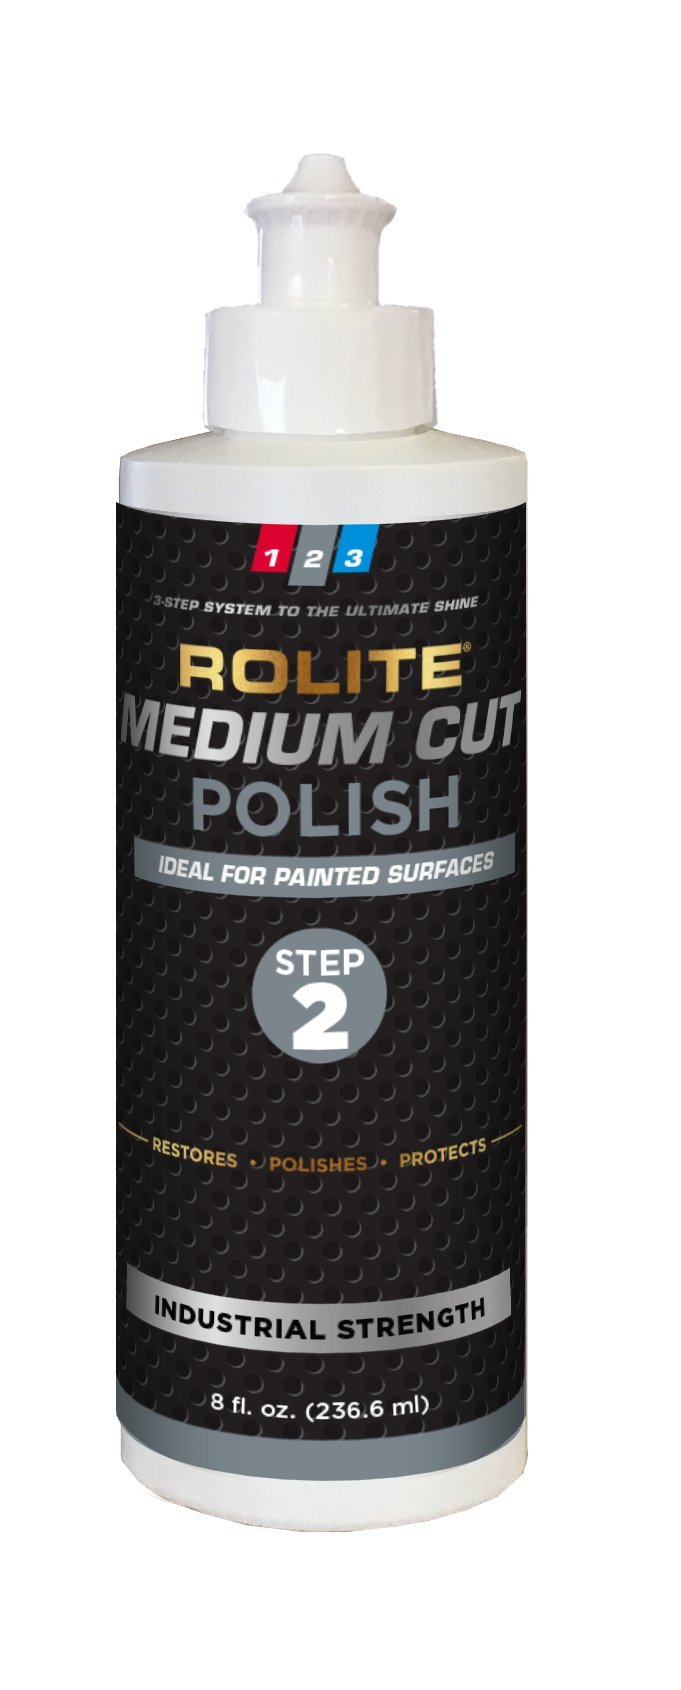 Rolite Medium Cut Polish (8 fl. oz.) for Removing Compound Scratch & Swirl Marks for Automotive Clear-Coat Paints, Low Sling, Easy Clean-up